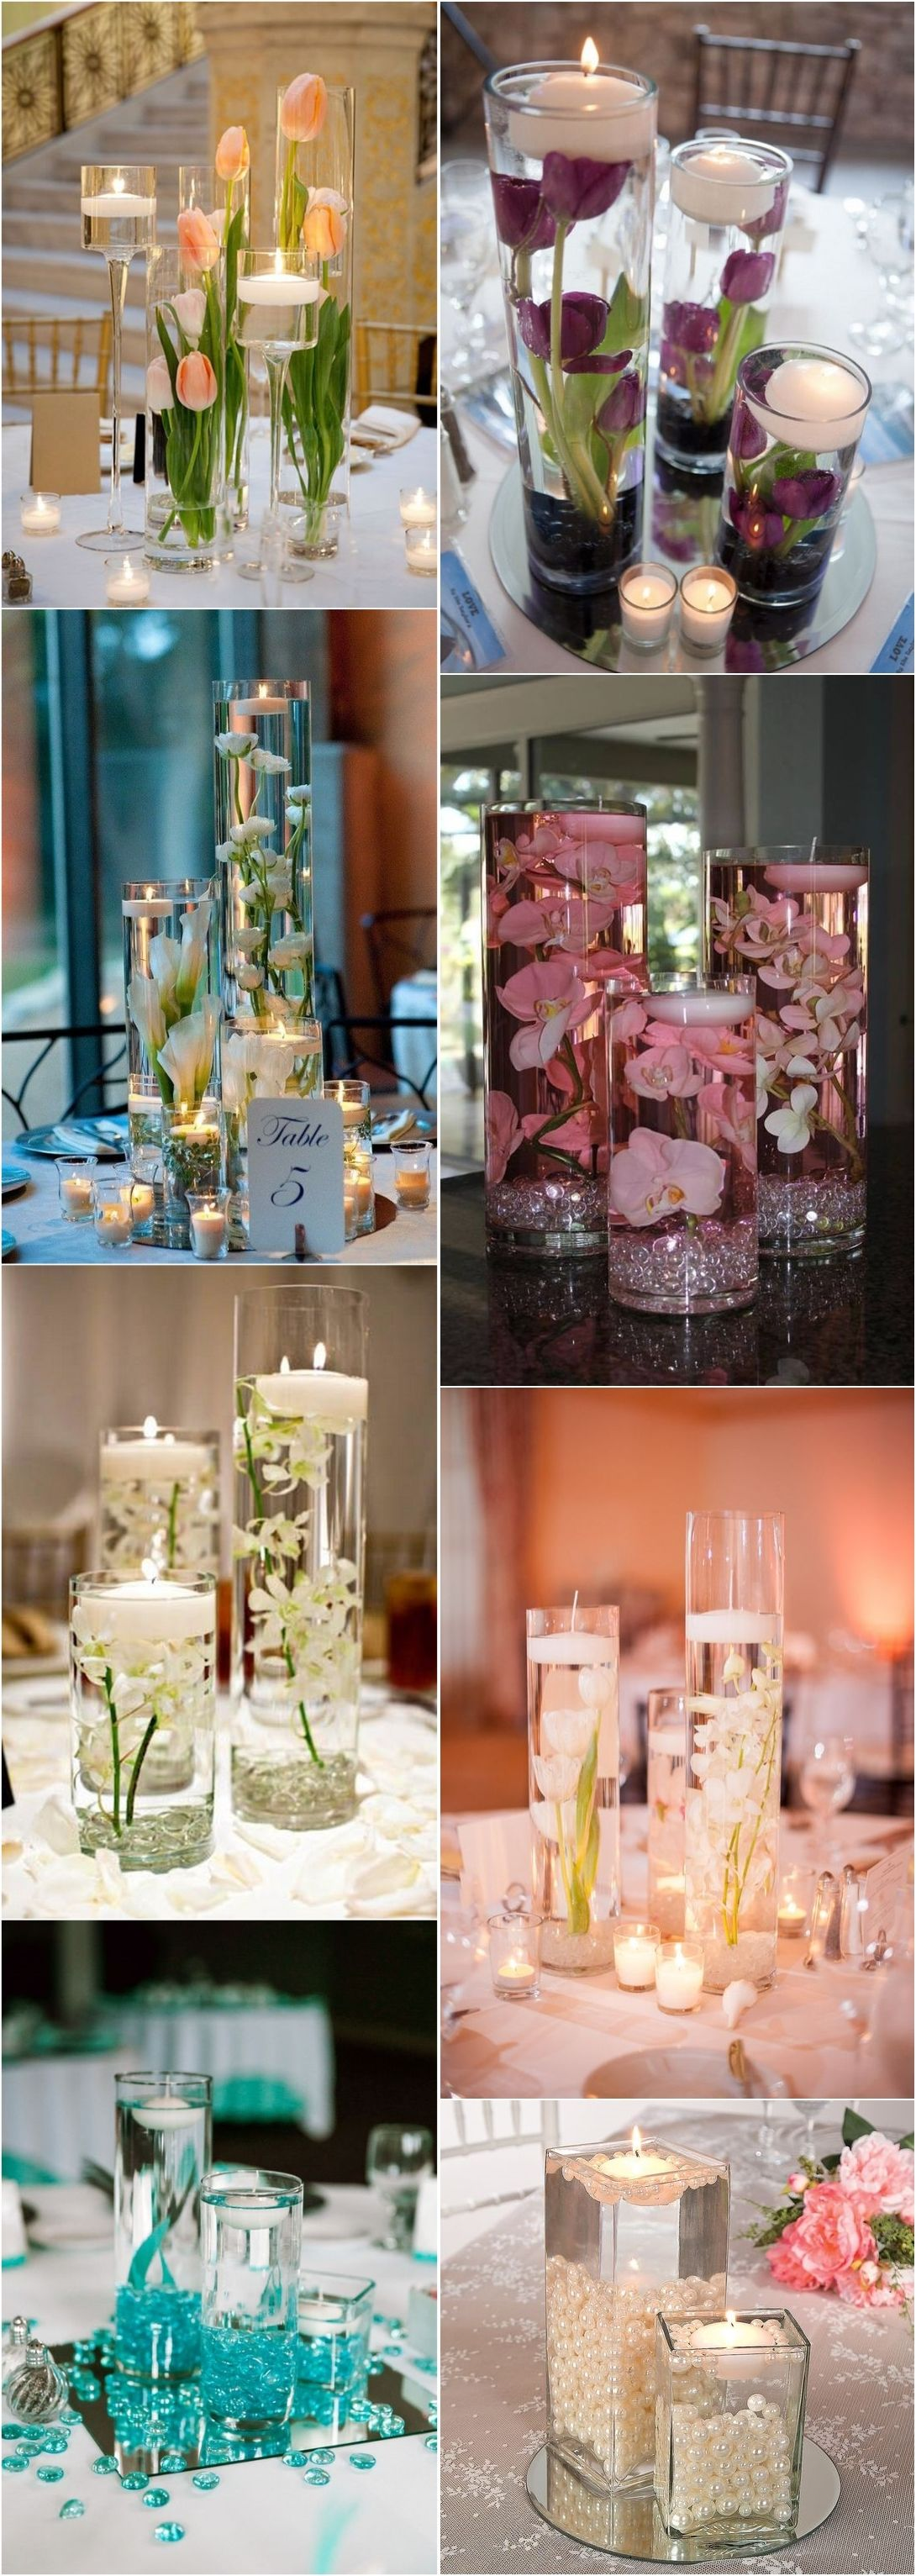 20 impossibly romantic floating wedding centerpieces decoraes de 20 impossibly romantic floating wedding centerpieces junglespirit Gallery